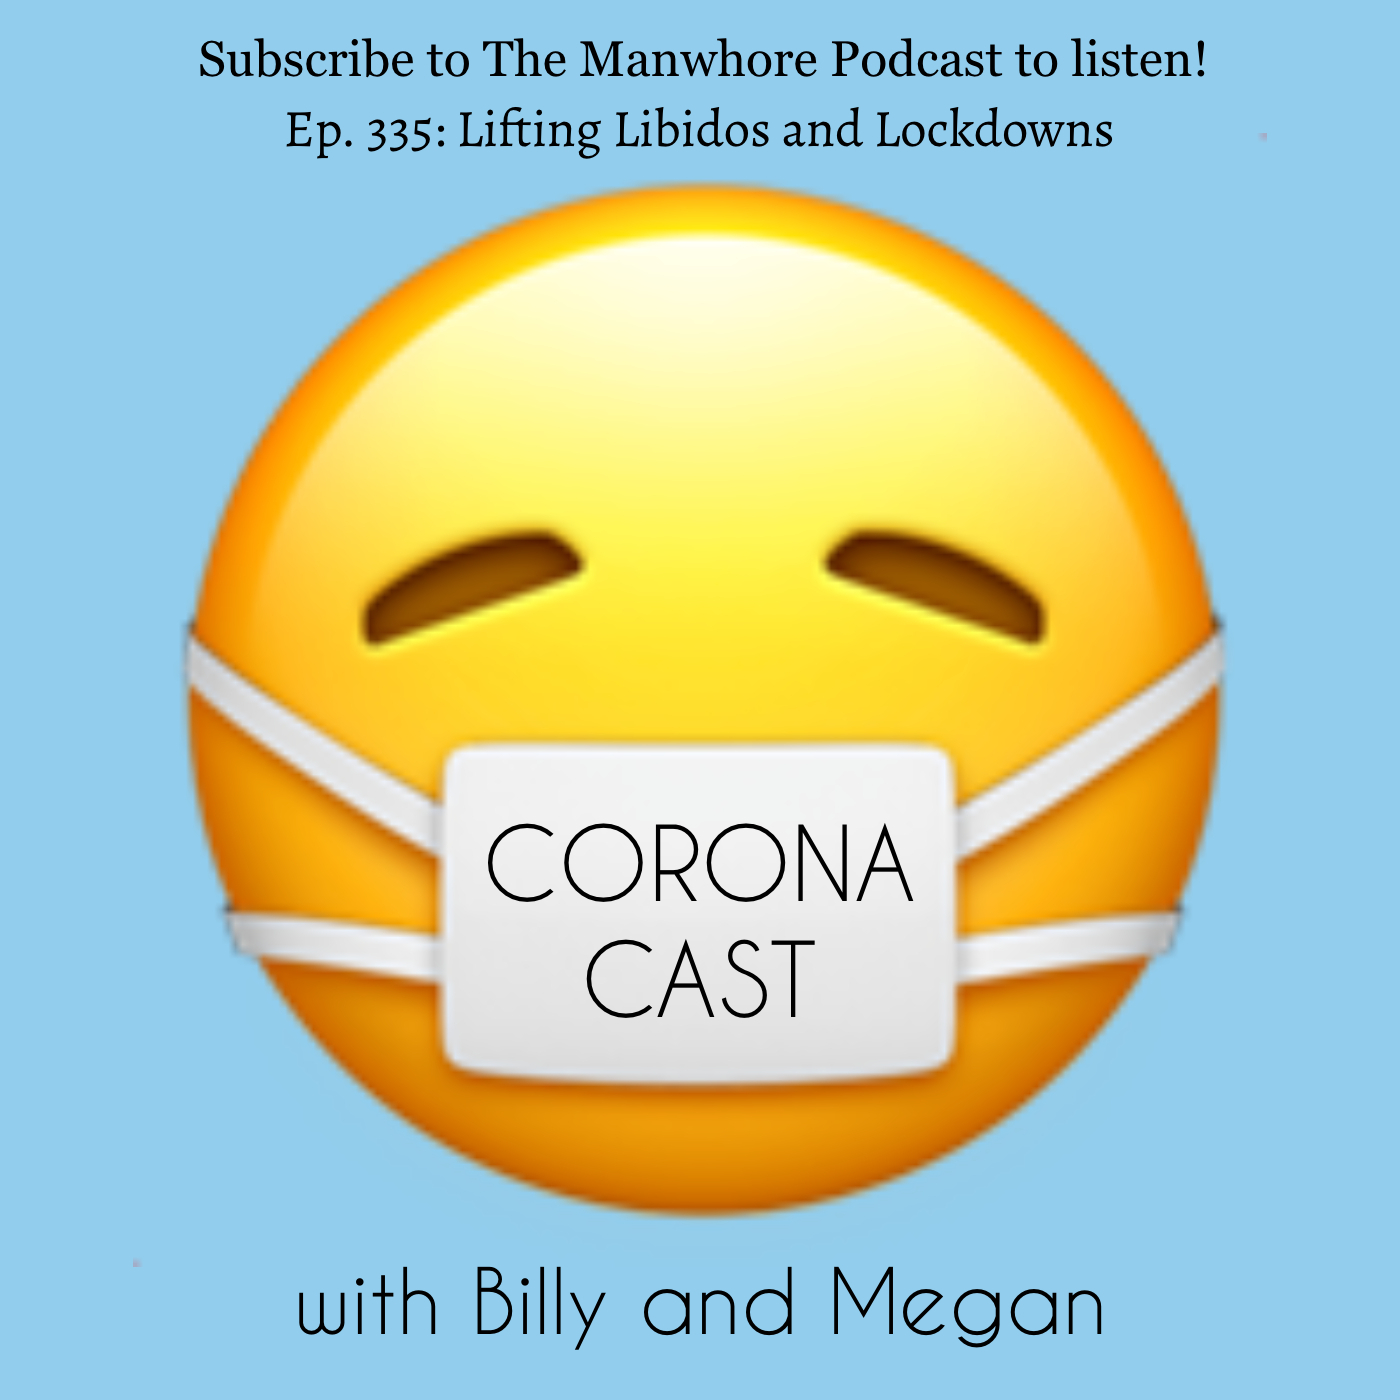 The Manwhore Podcast: A Sex-Positive Quest - Ep. 335: Corona Cast Part 13 - Lifting Libidos and Lockdowns